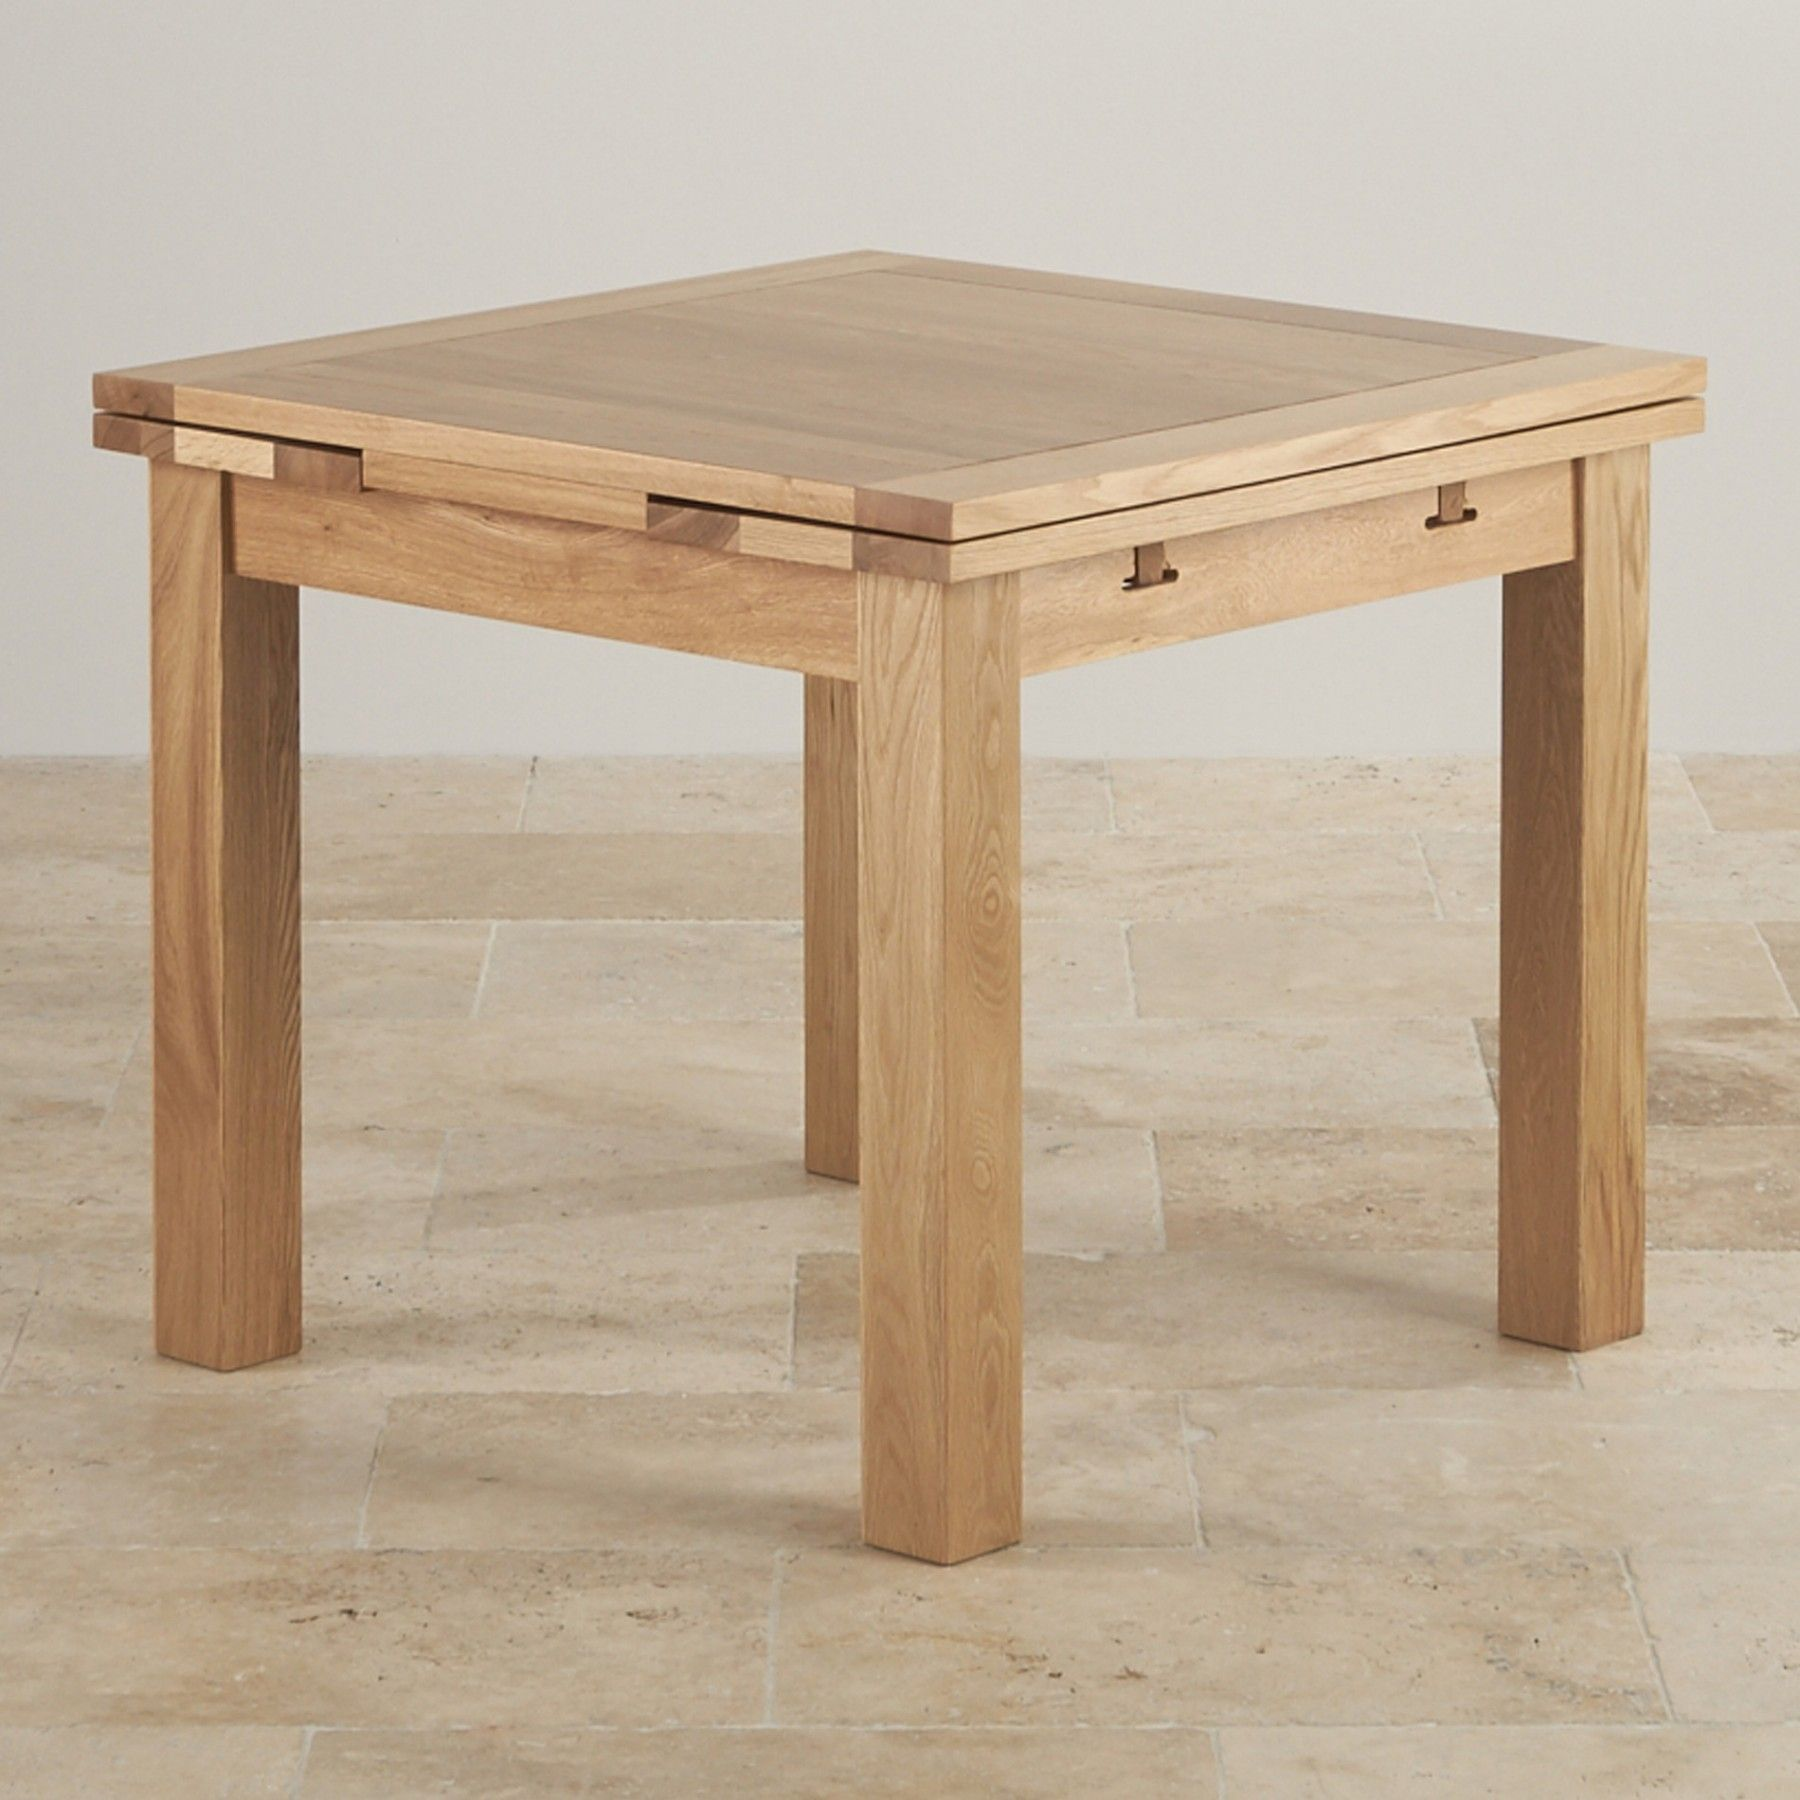 Dorset 3ft X 3ft Natural Solid Oak Extending Dining Table Seats